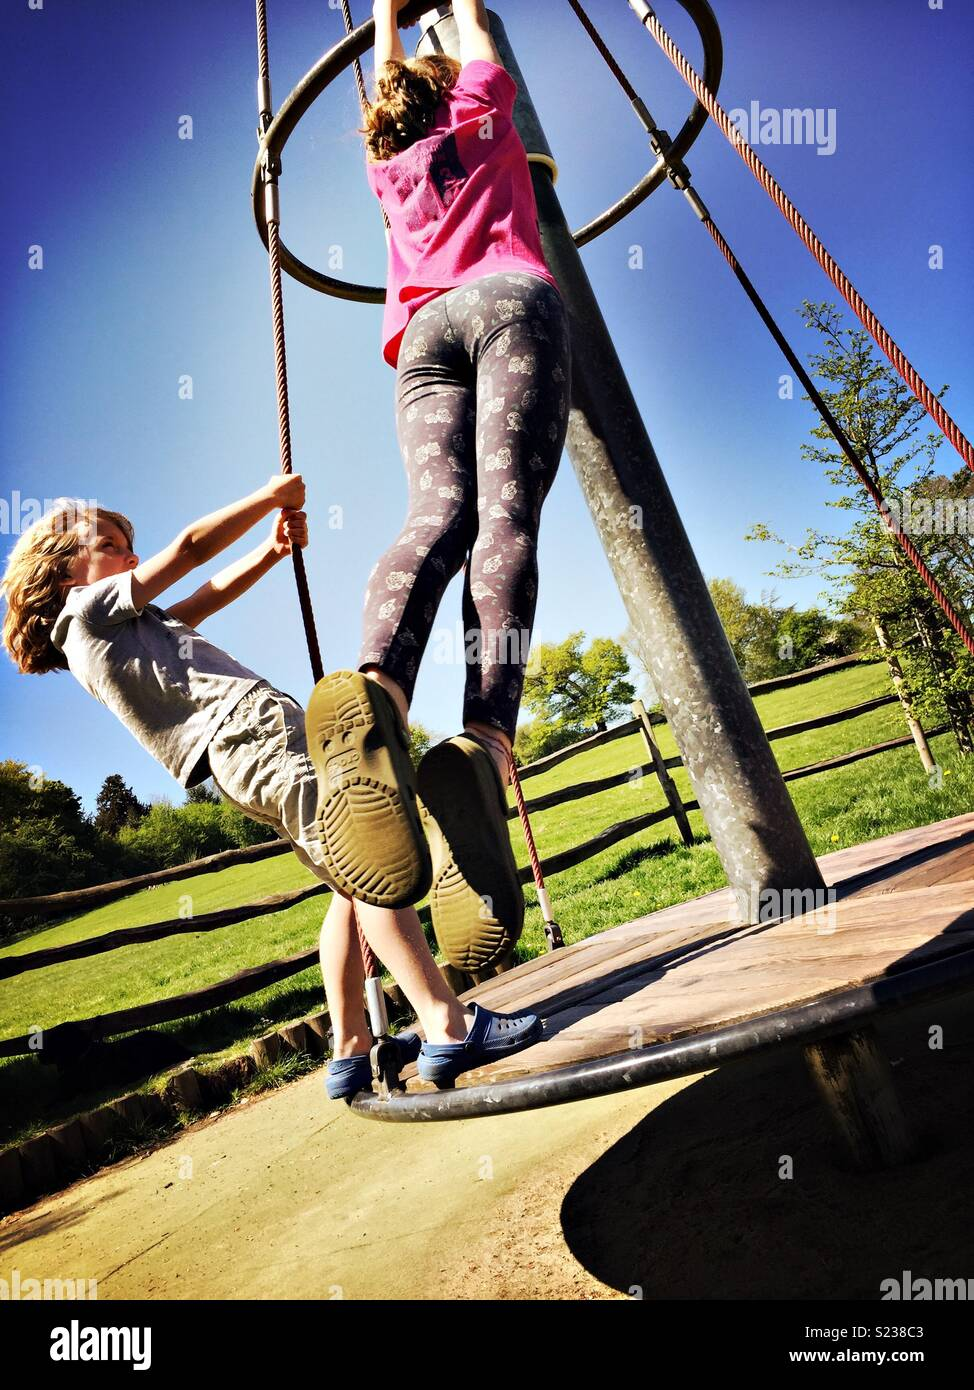 Kids playing in park. Action shot - Stock Image